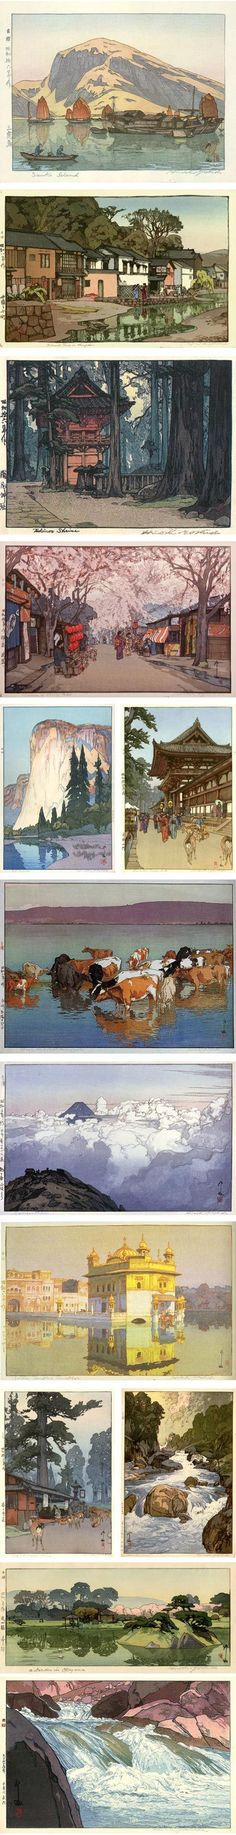 lines and colors :: a blog about drawing, painting, illustration, comics, concept art and other visual arts » Hiroshi Yoshida (update):